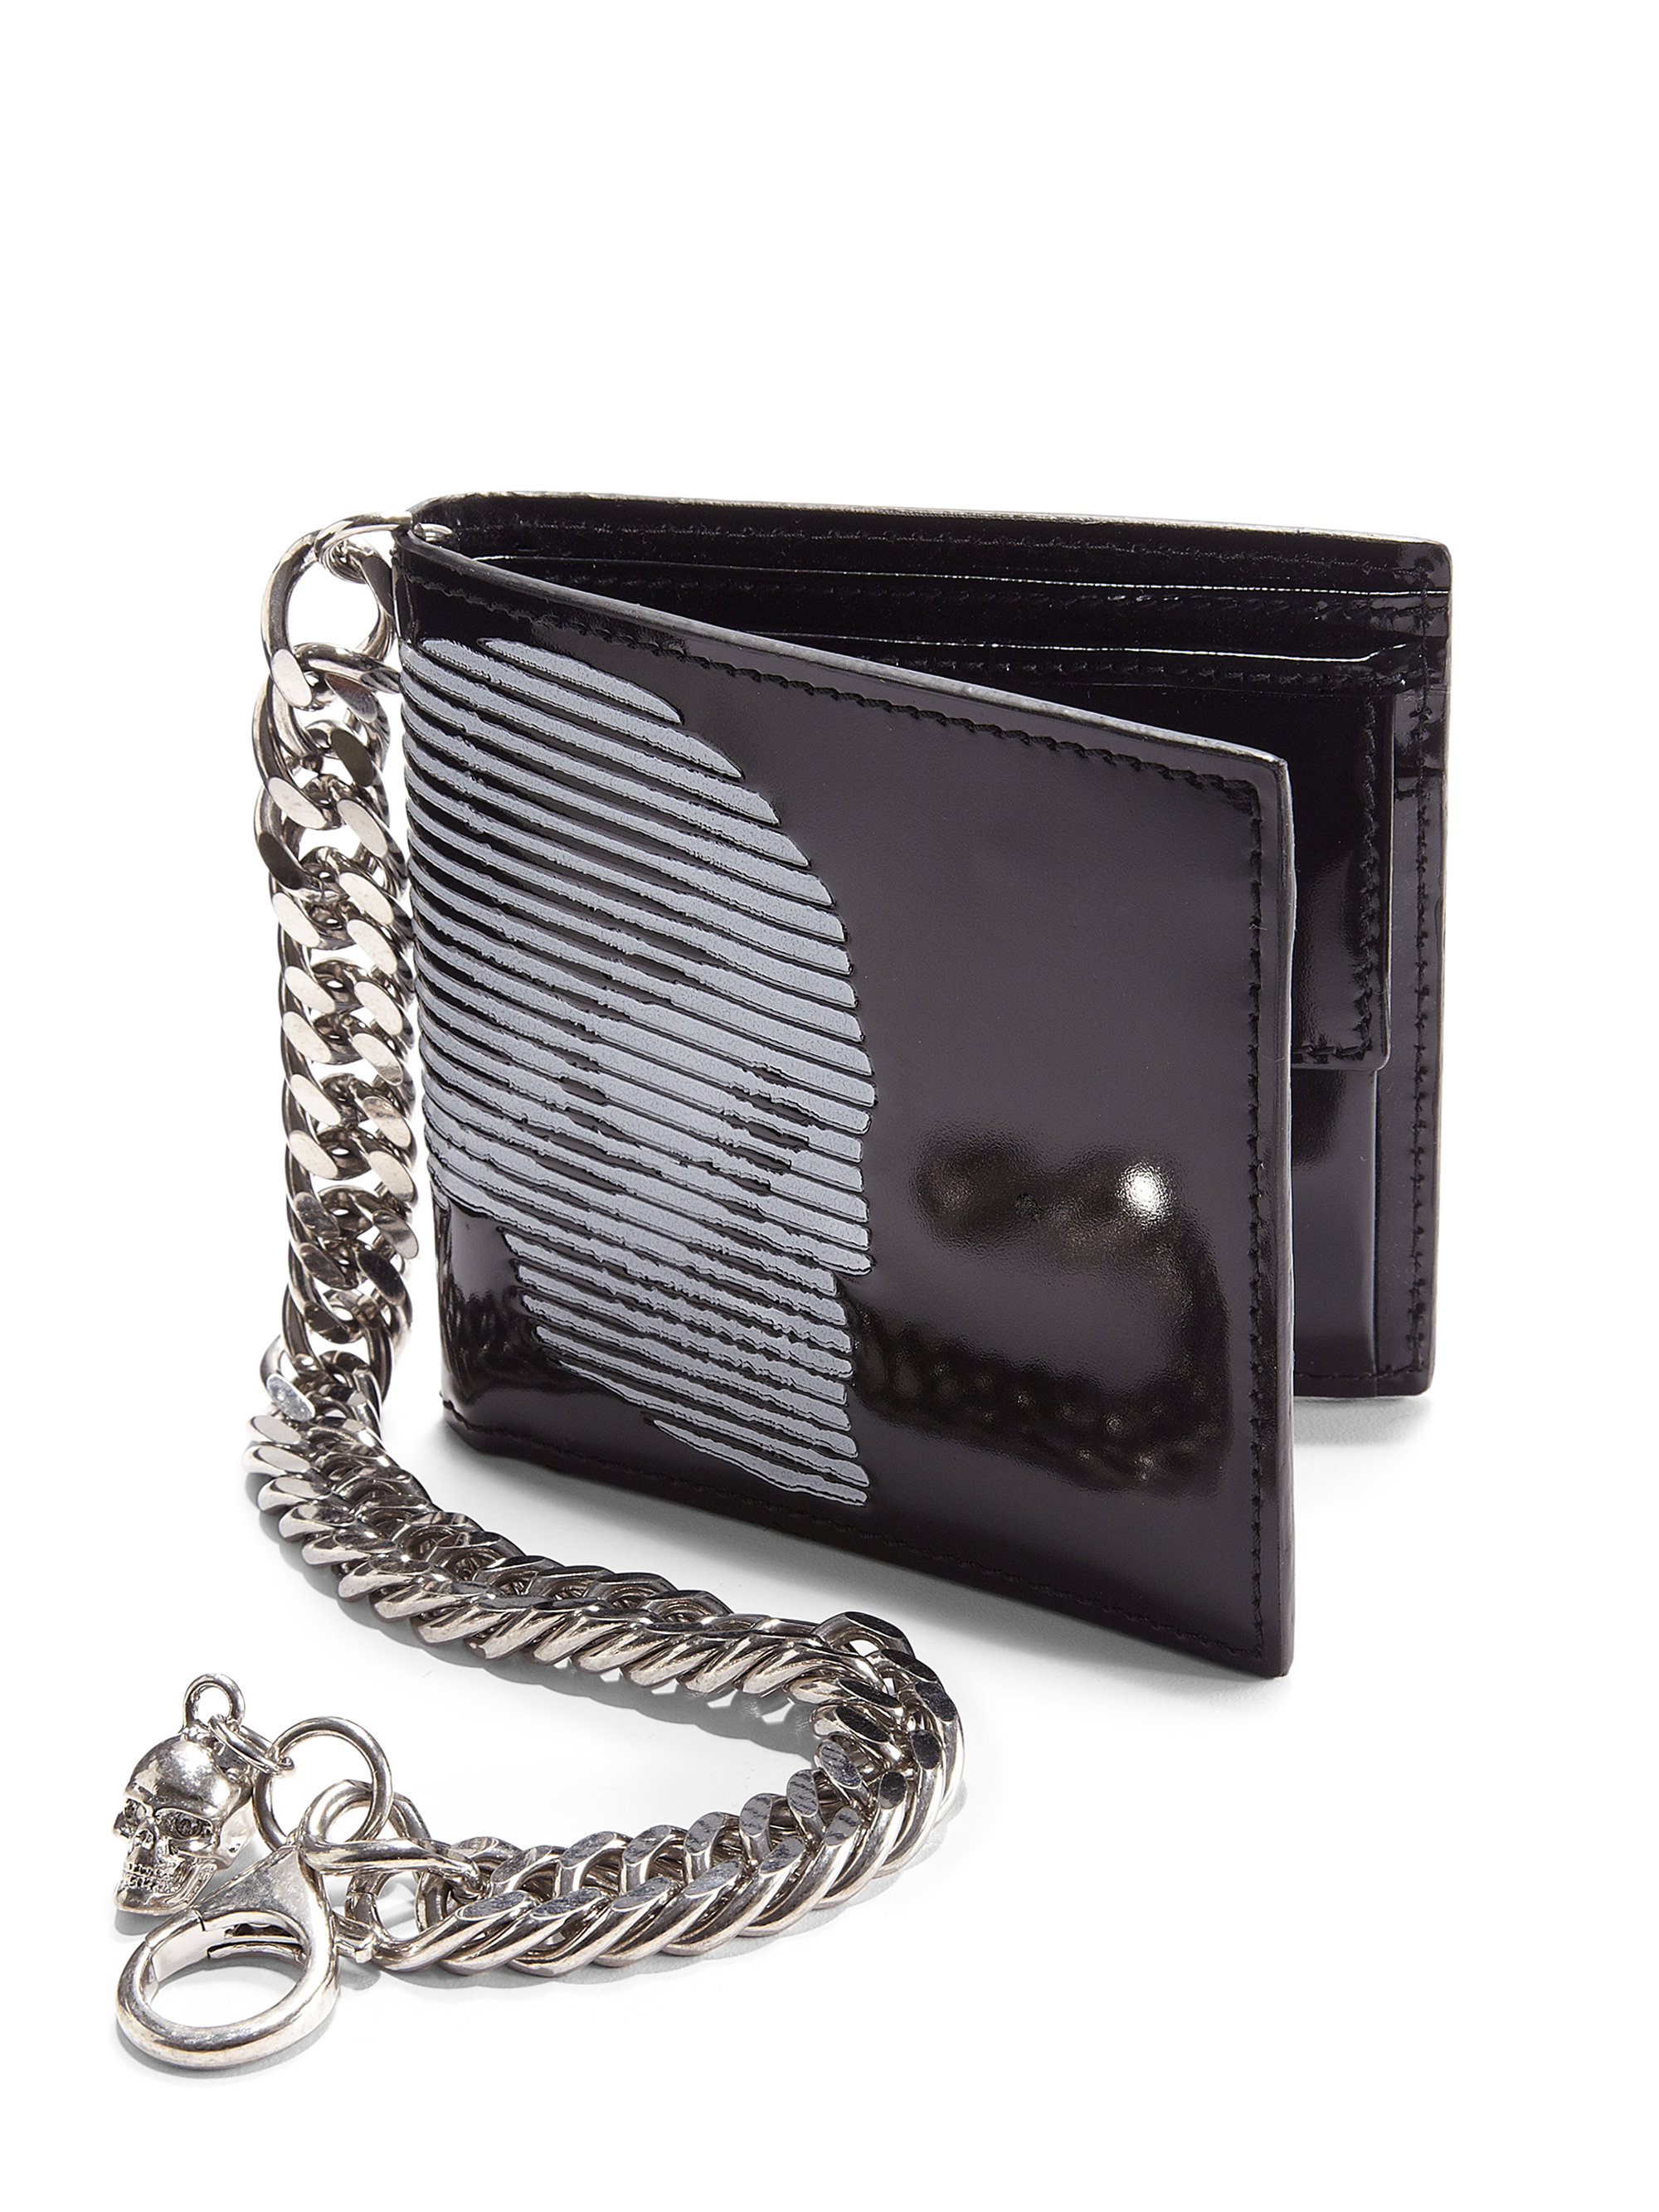 Alexander Mcqueen Printed Leather Chain Wallet In Black